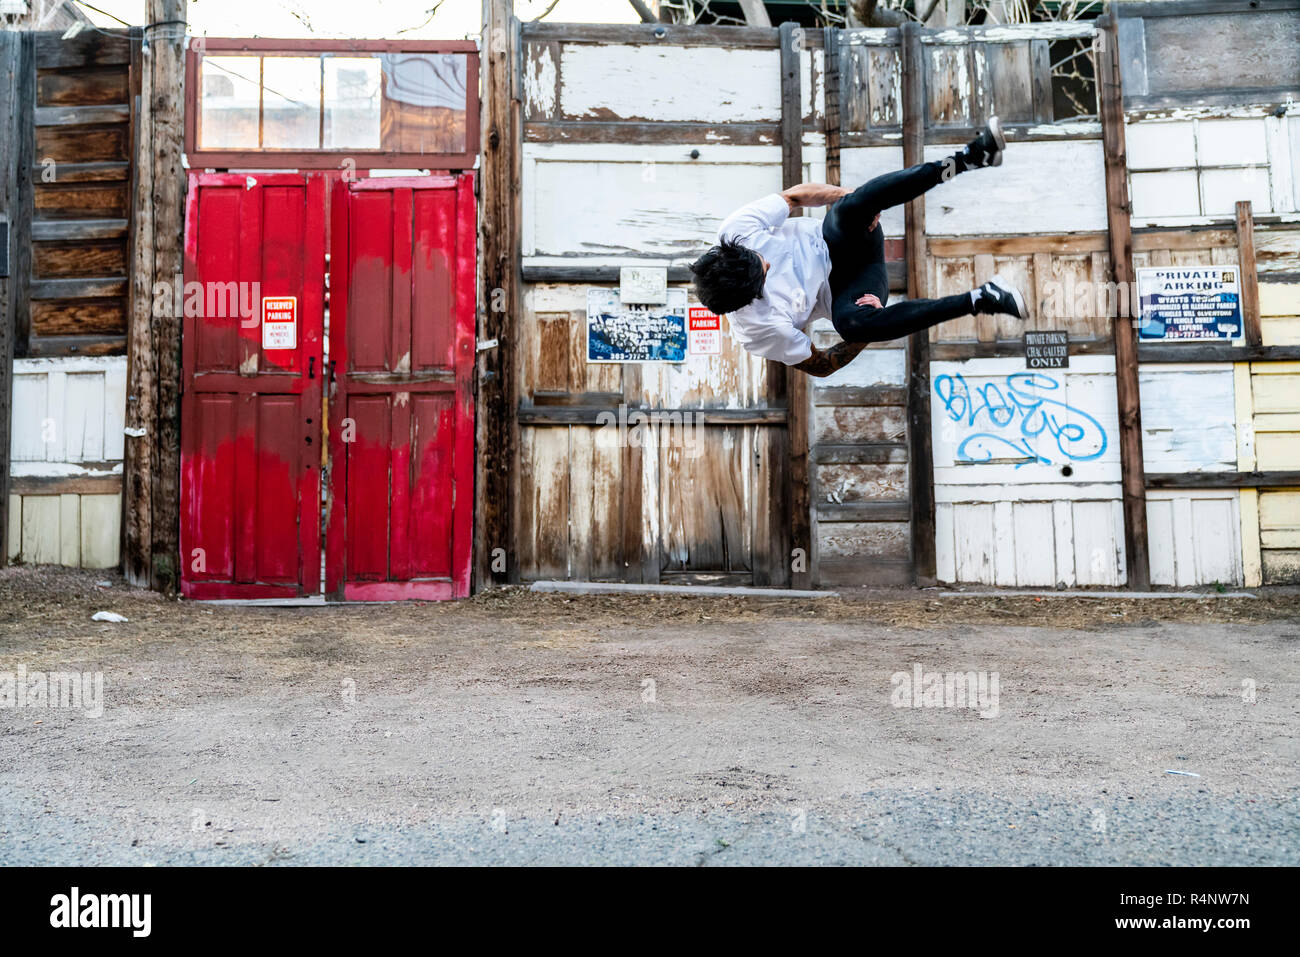 A young fit parkour athlete in a side-flip in front of street art in Santa Fe Arts District of Denver, Colorado, USA - Stock Image